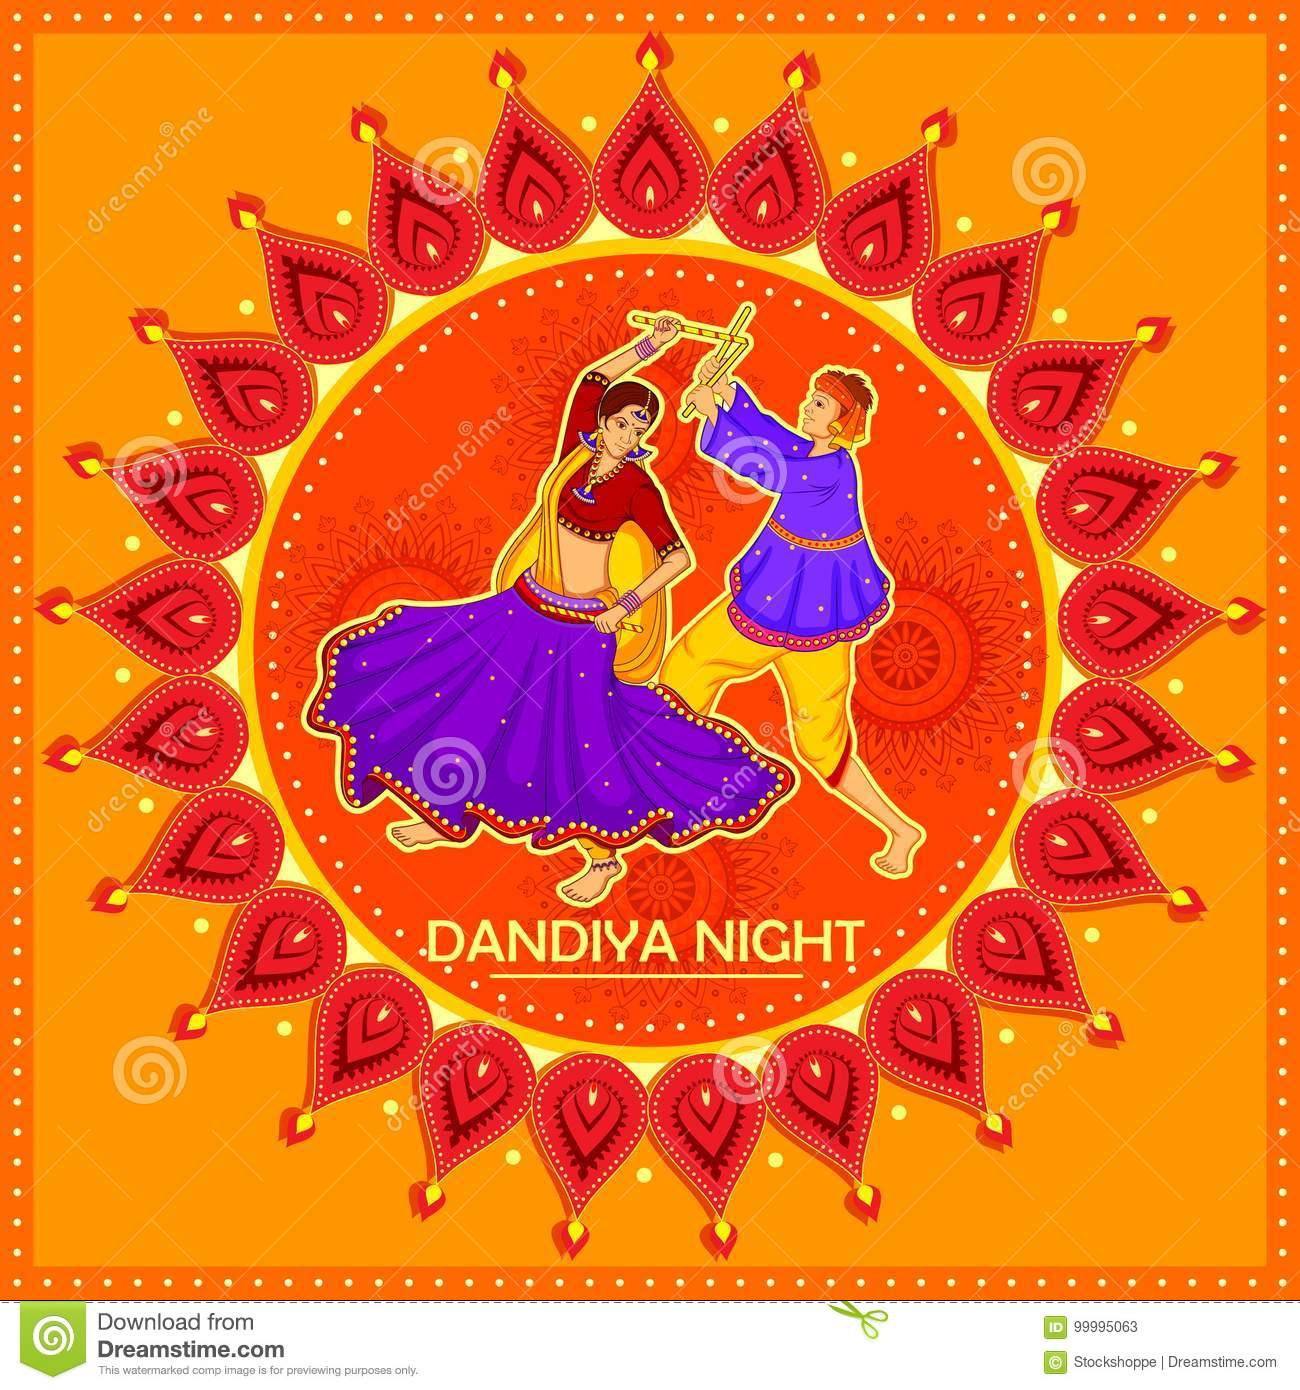 People Performing Garba Dance On Poster Banner Design For Dandiya Night Stock Vector Illustration Of Indian Illustration 99995063